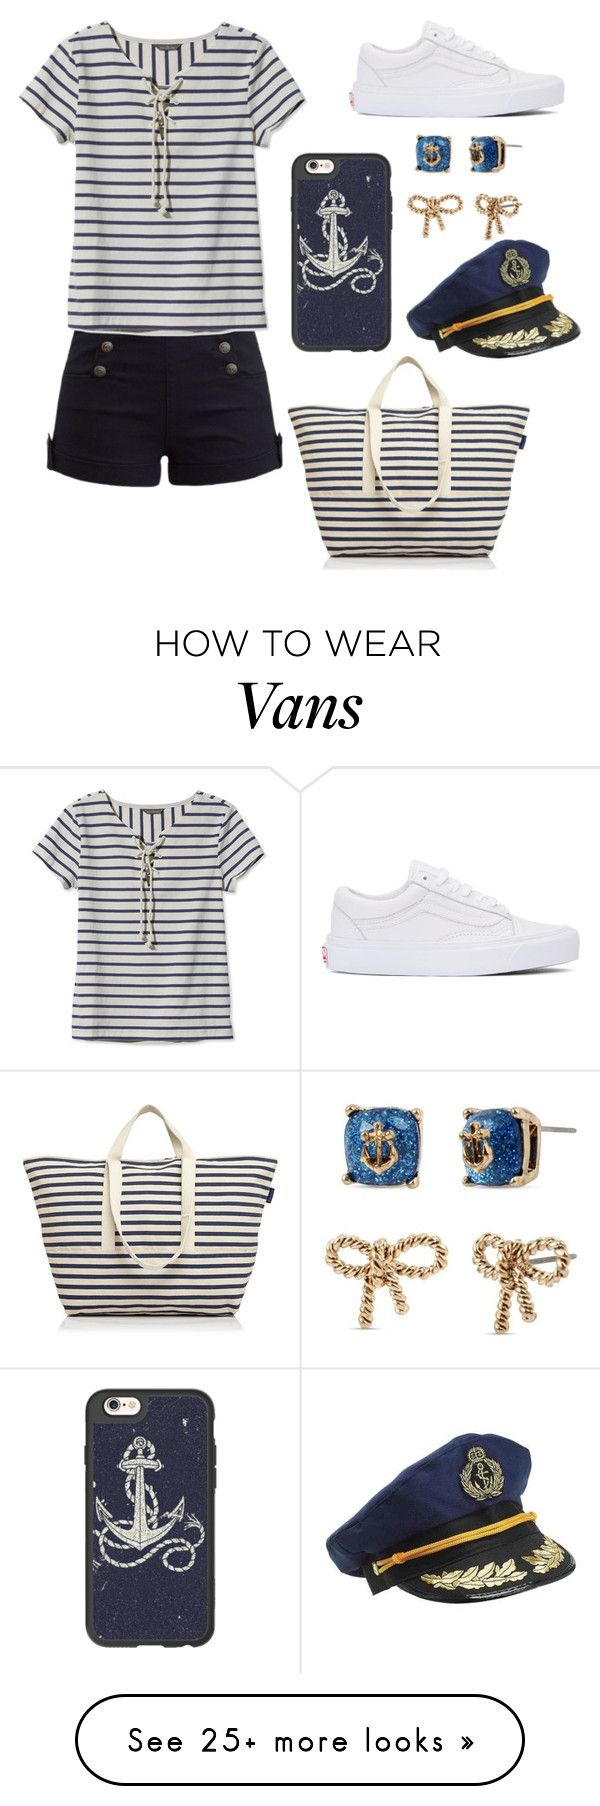 """"" by mbubbles109 on Polyvore featuring Casetify, BAGGU, L.L.Bean, Betsey Johnson and Vans"